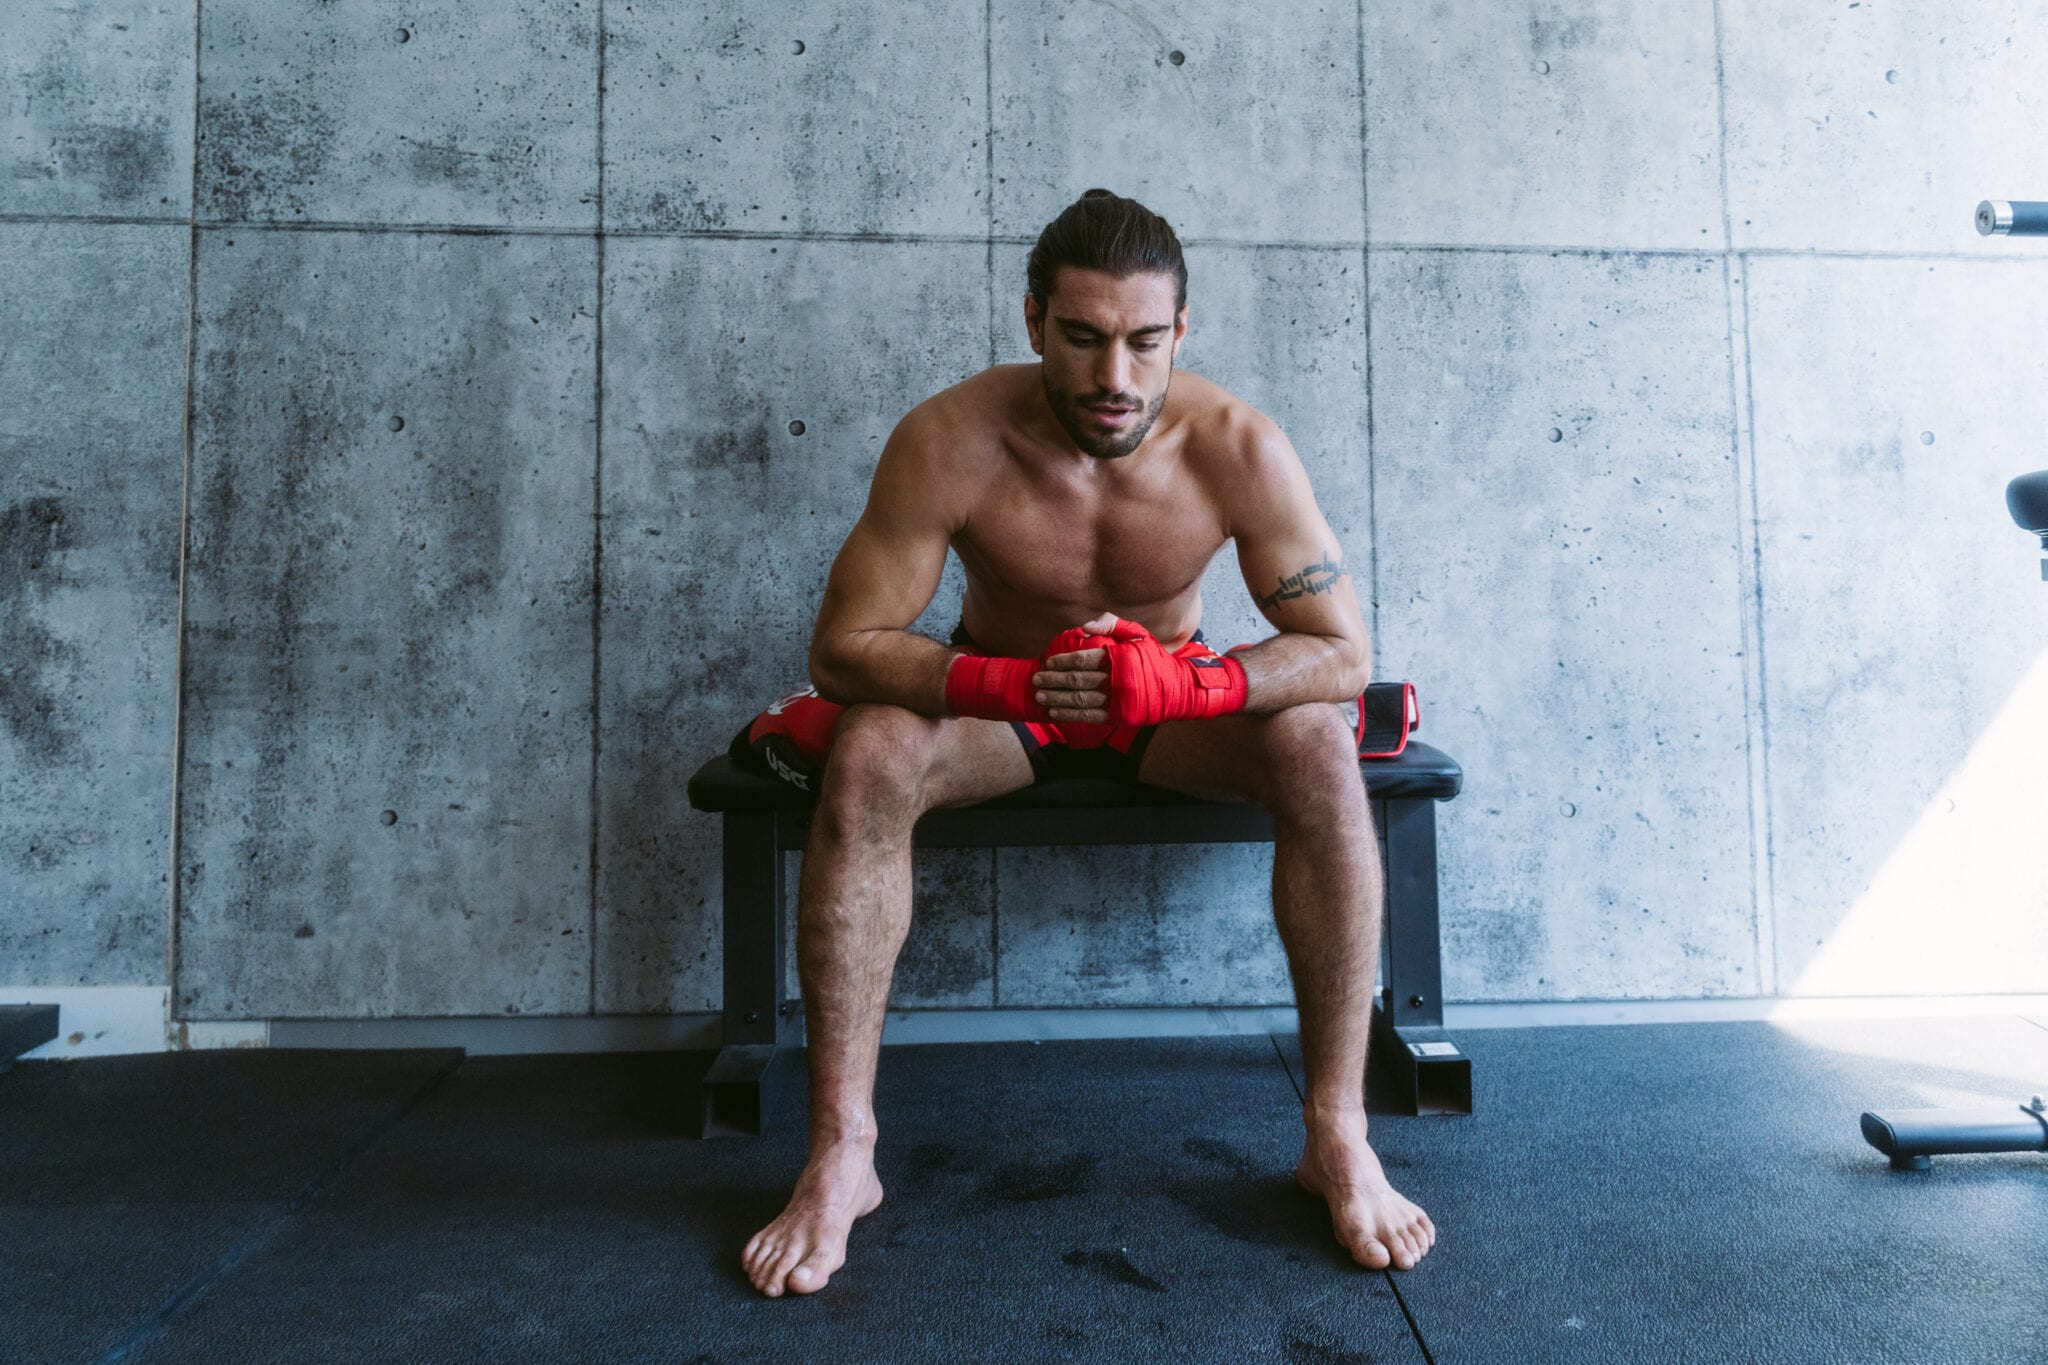 MMA fighter's cannabis exemption in Colorado could be game-changing for pro athletes - Elias Theodorou